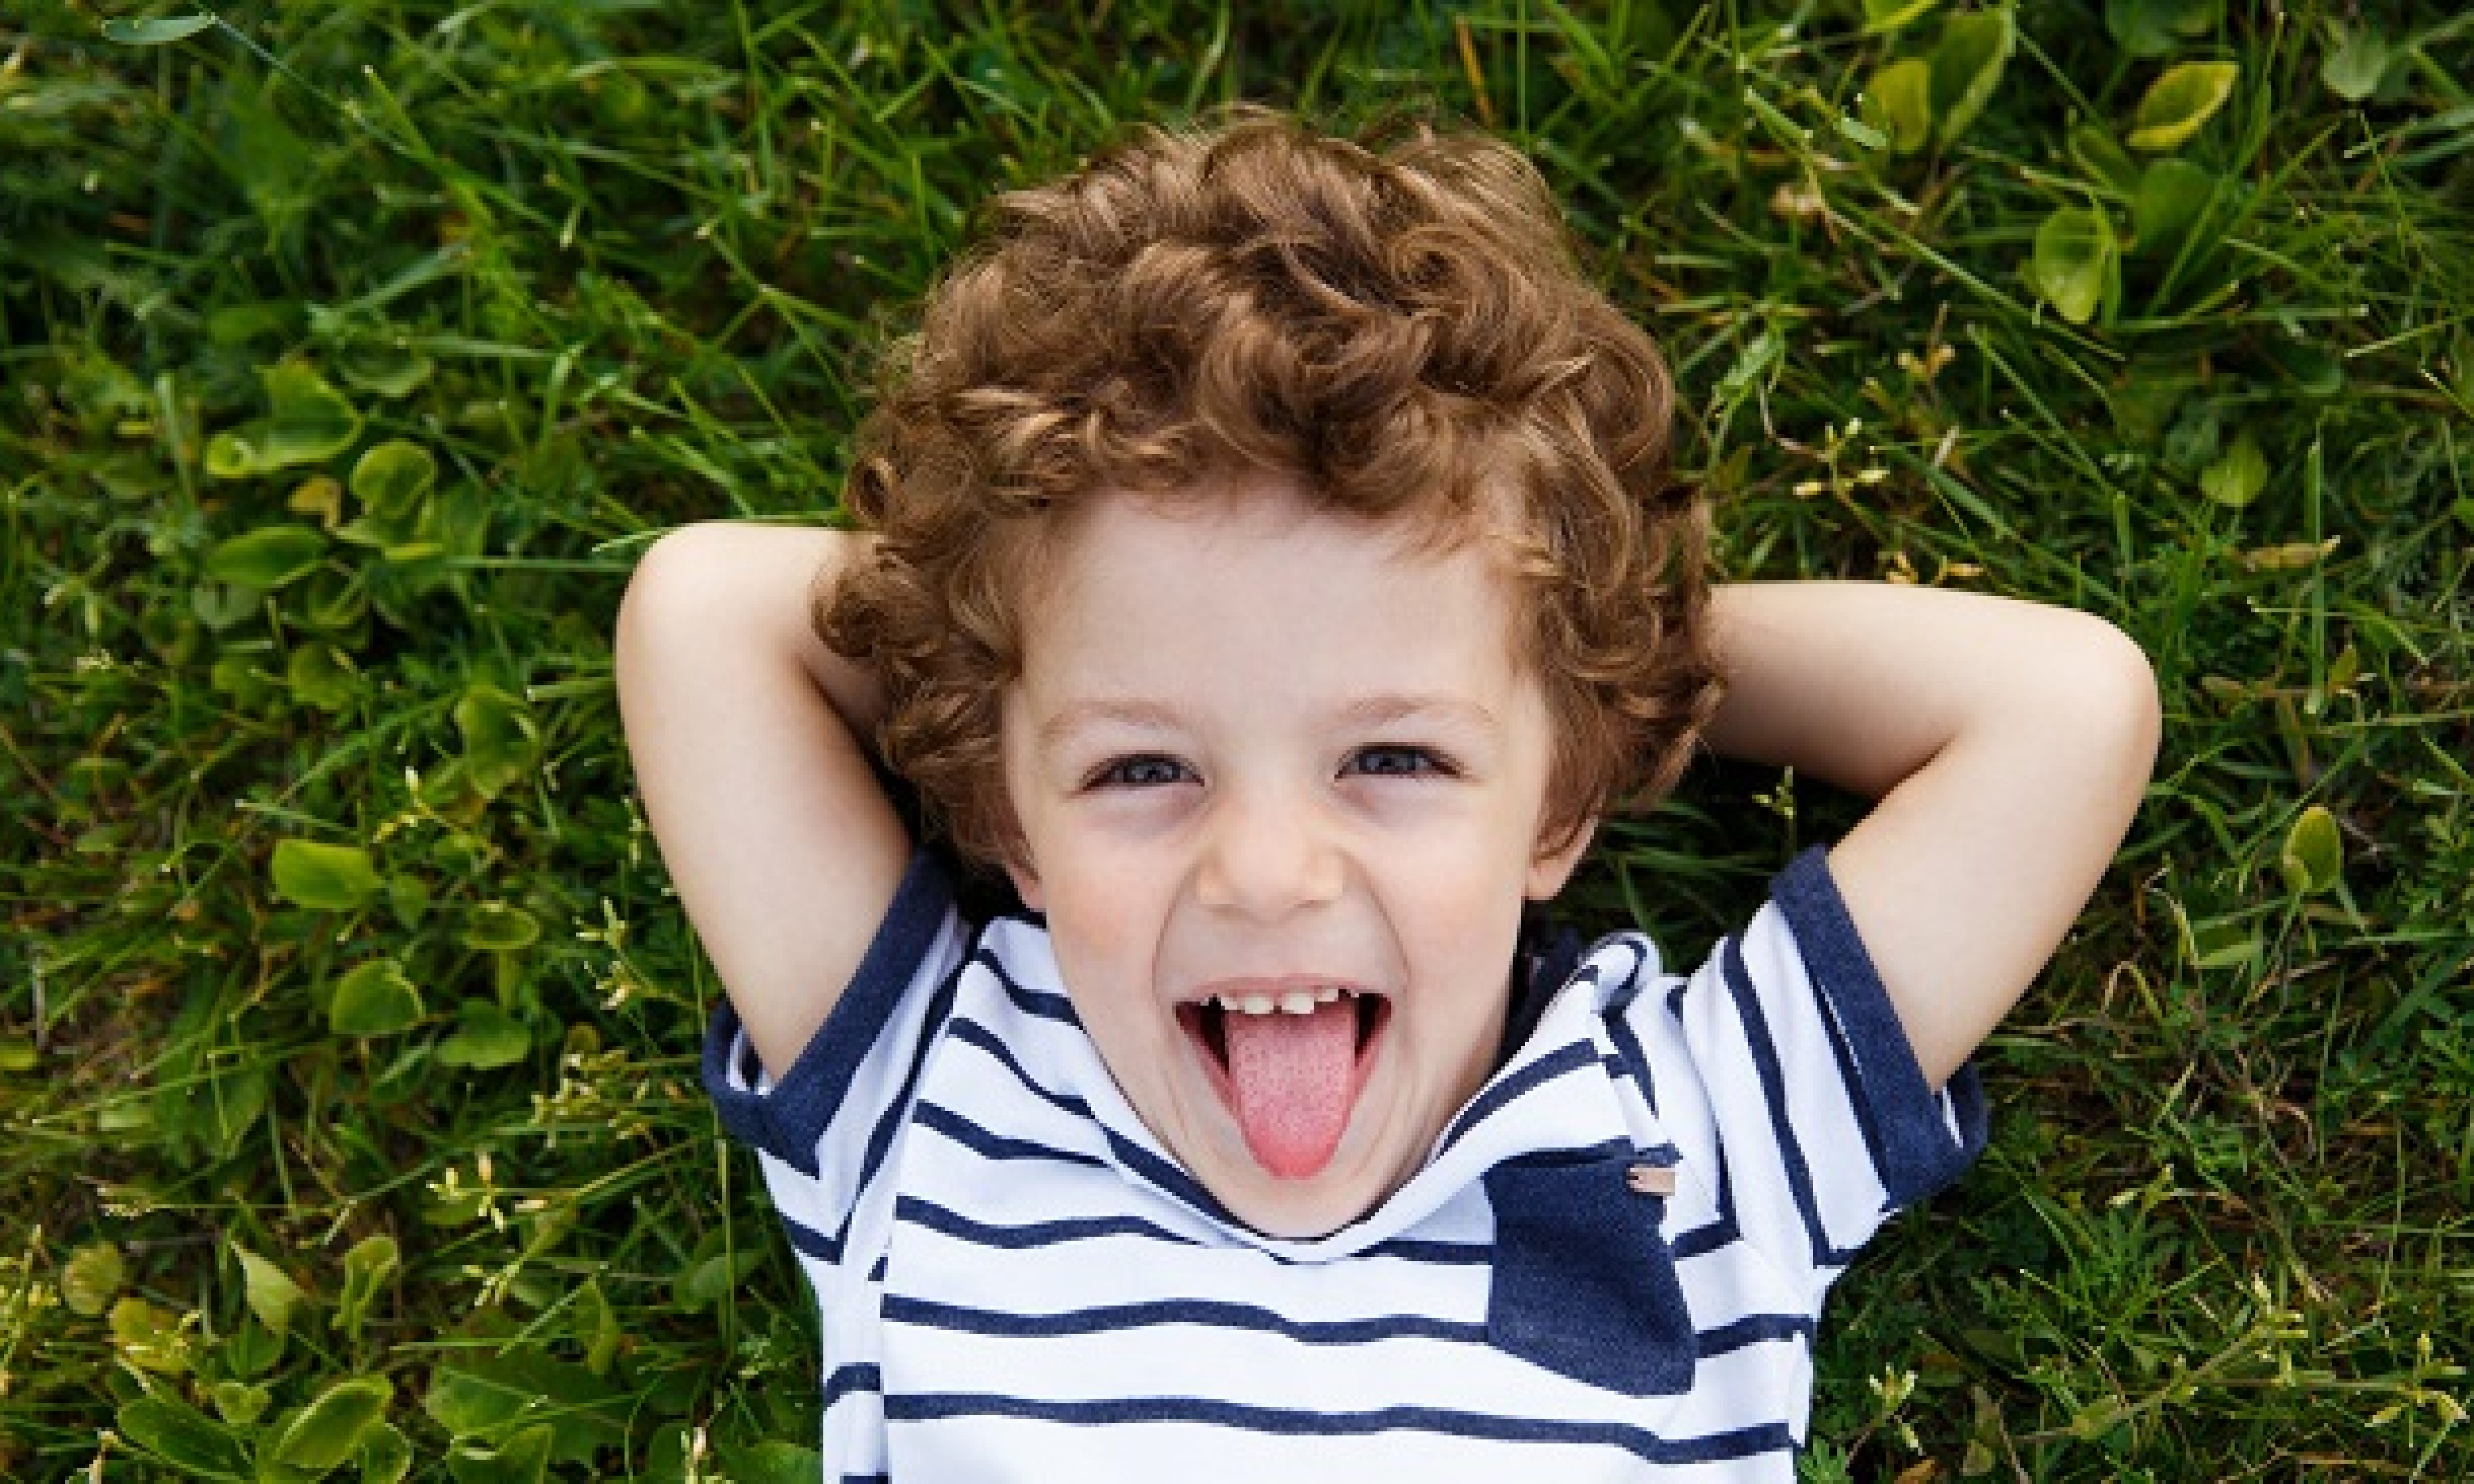 Curly-haired boy in striped t-shirt with hands behind head lying on grass smiling and sticking out tongue.